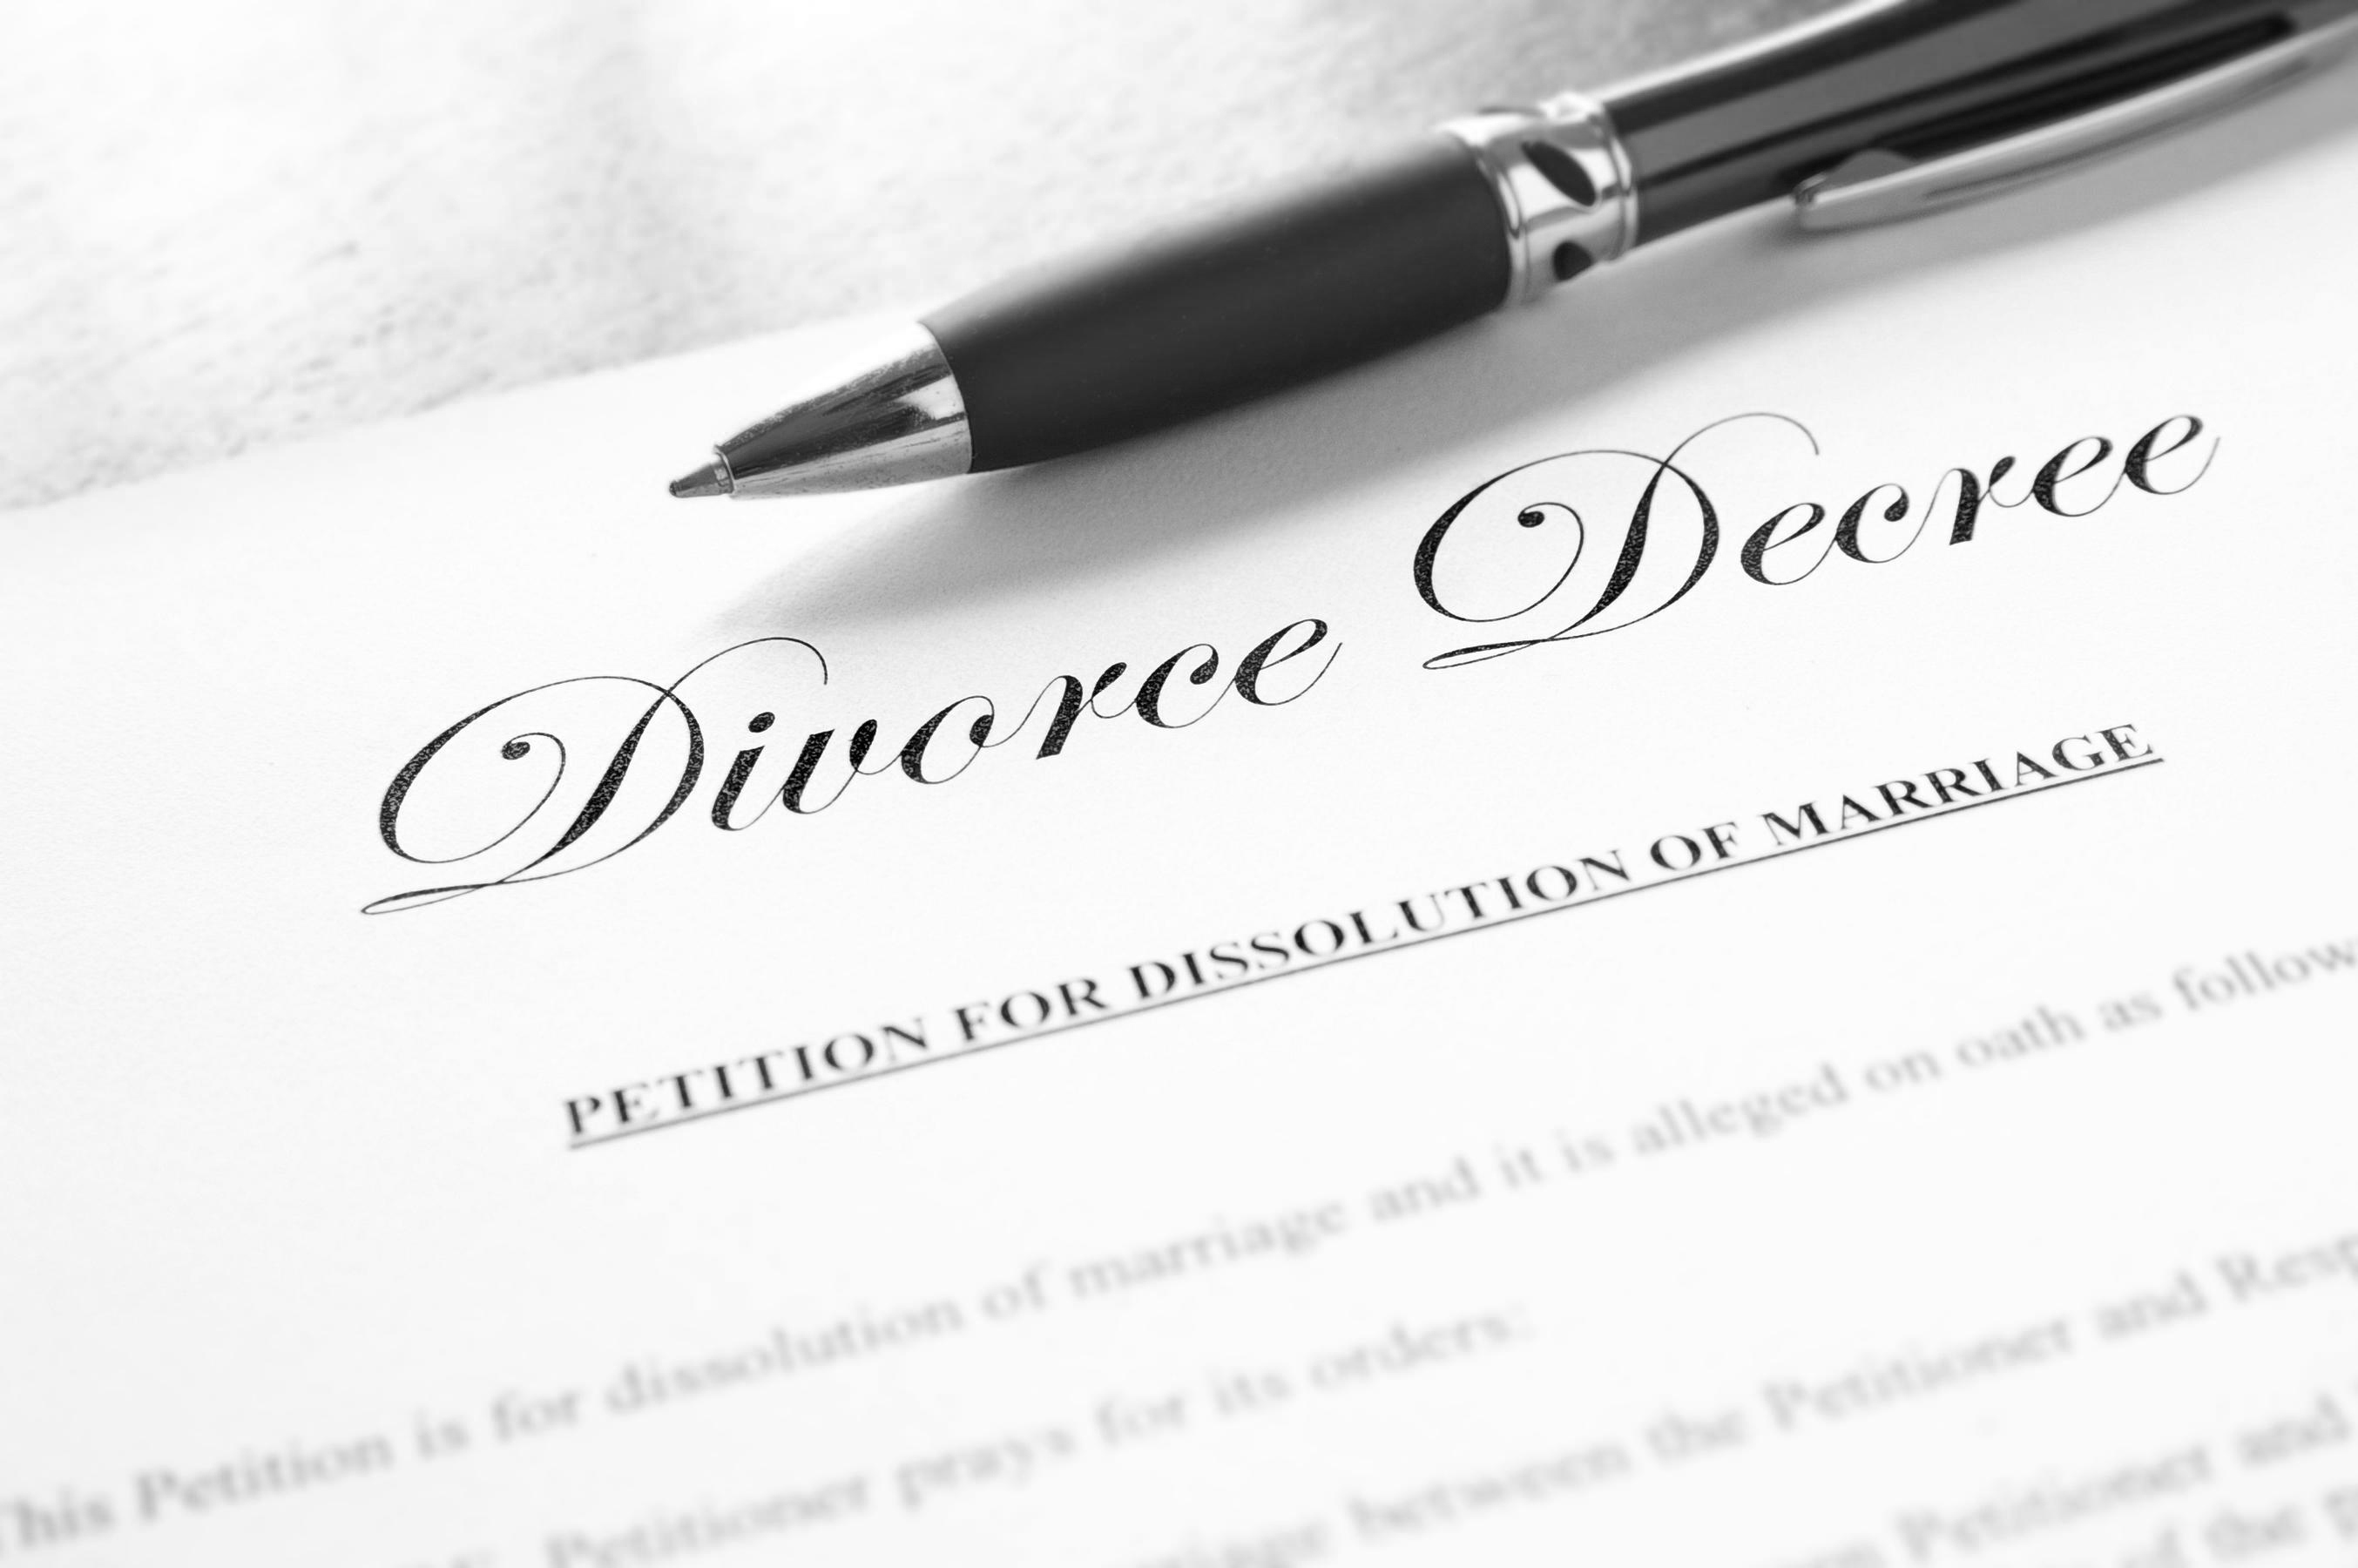 Joint Custody Agreements and Visitation Schedules - Doing What Is Best for Your Child